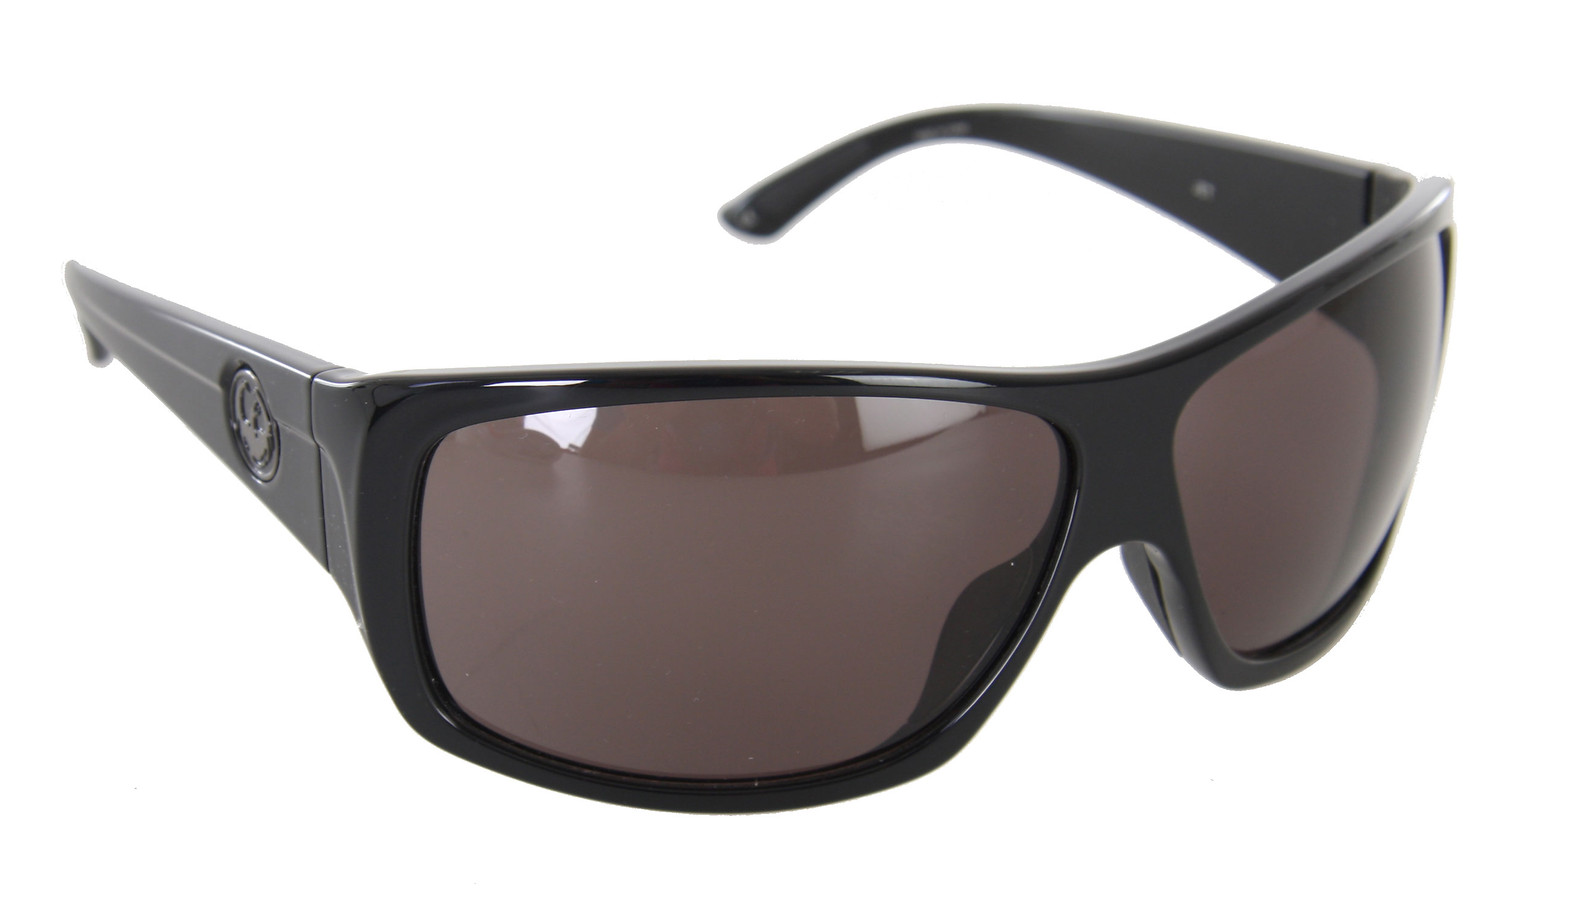 Dragon Recruit Sunglasses Jet Grey  dragon-recruit-sngls-jetgry-10.jpg